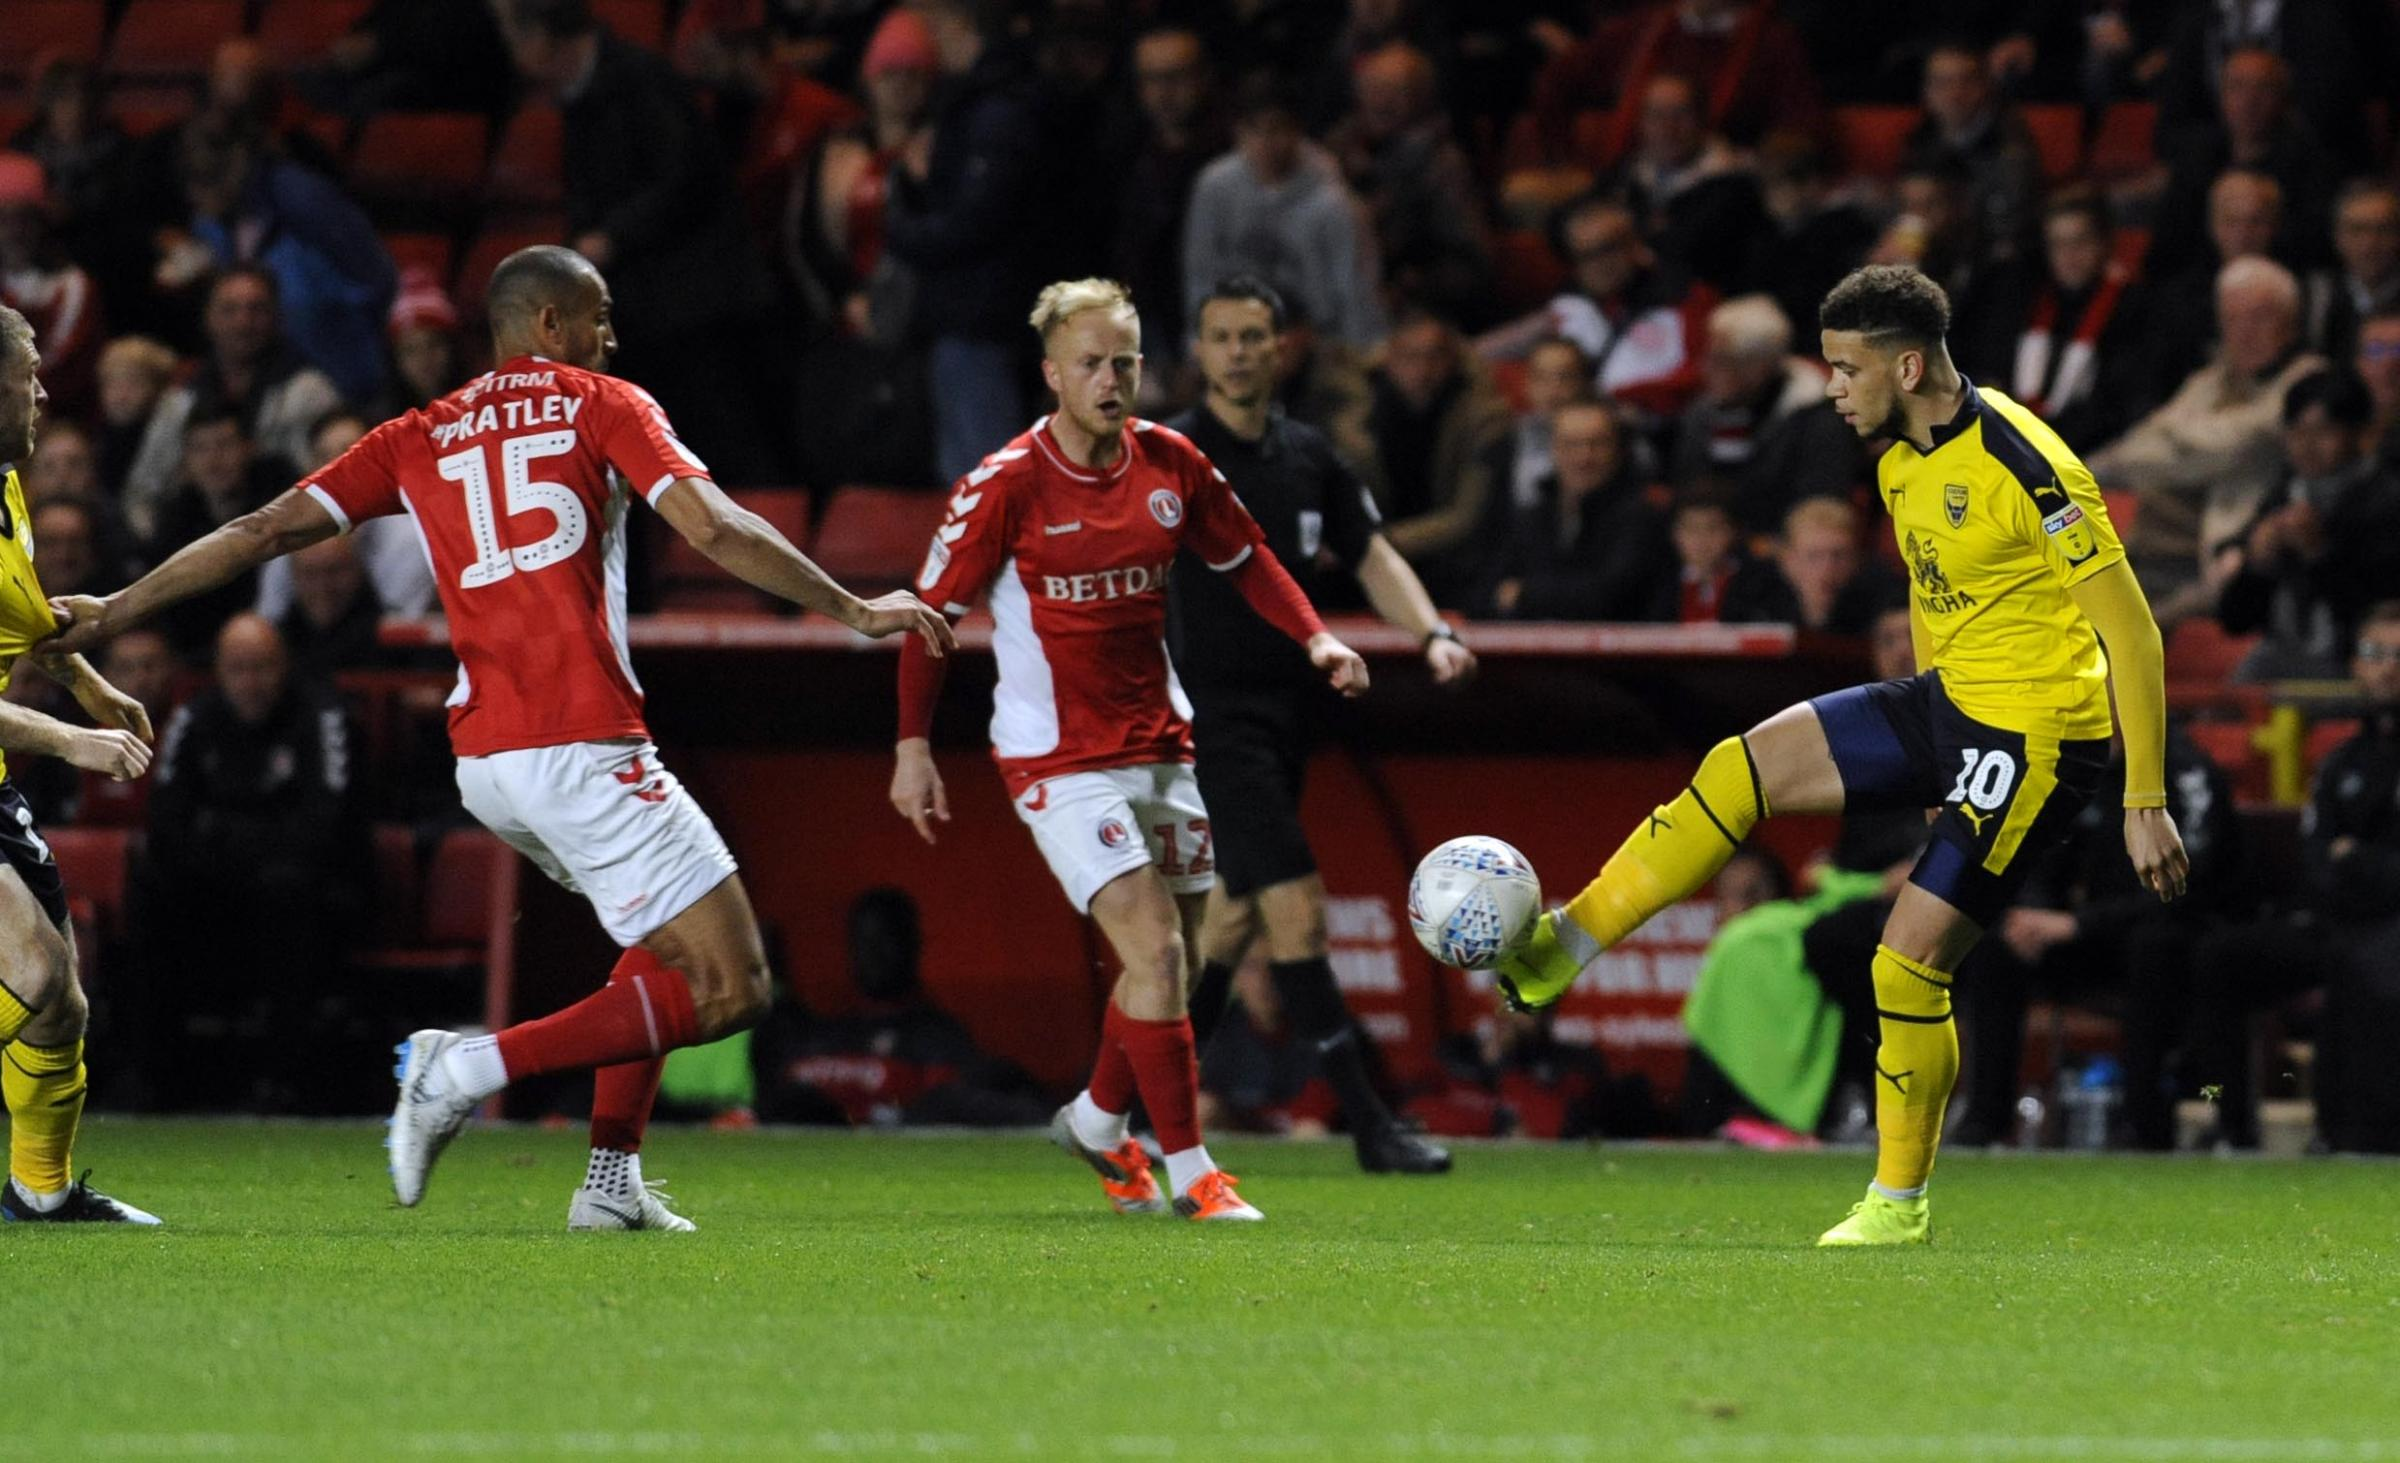 Marcus Browne takes on two Charlton Athletic players in Oxford United's 1-1 draw at the Valley in October  Picture: David Fleming